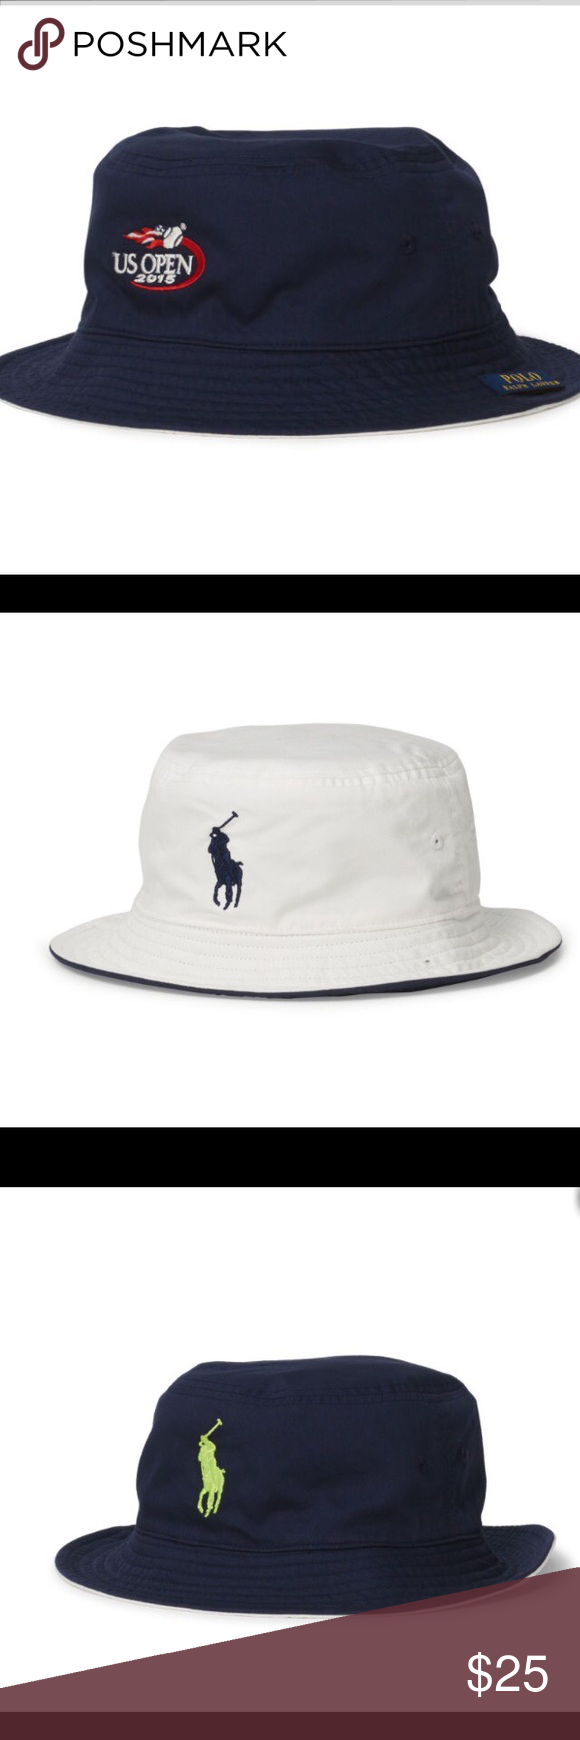 18dac017b03 Polo Ralph Lauren reversible bucket hat U.S. Open A great looking VERY  light REVERSIBLE bucket hat. You can flip it into navy or white colors